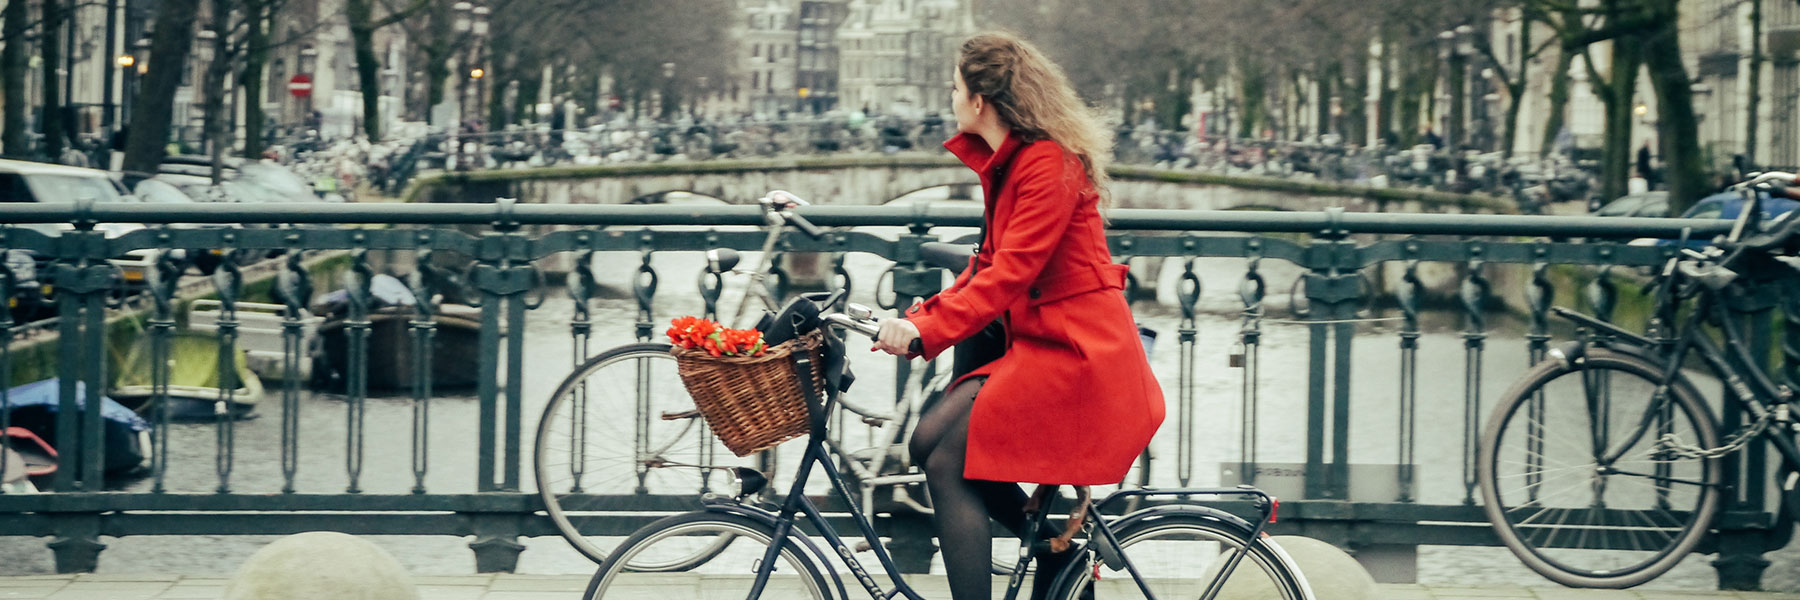 Bicycle chic in Amsterdam